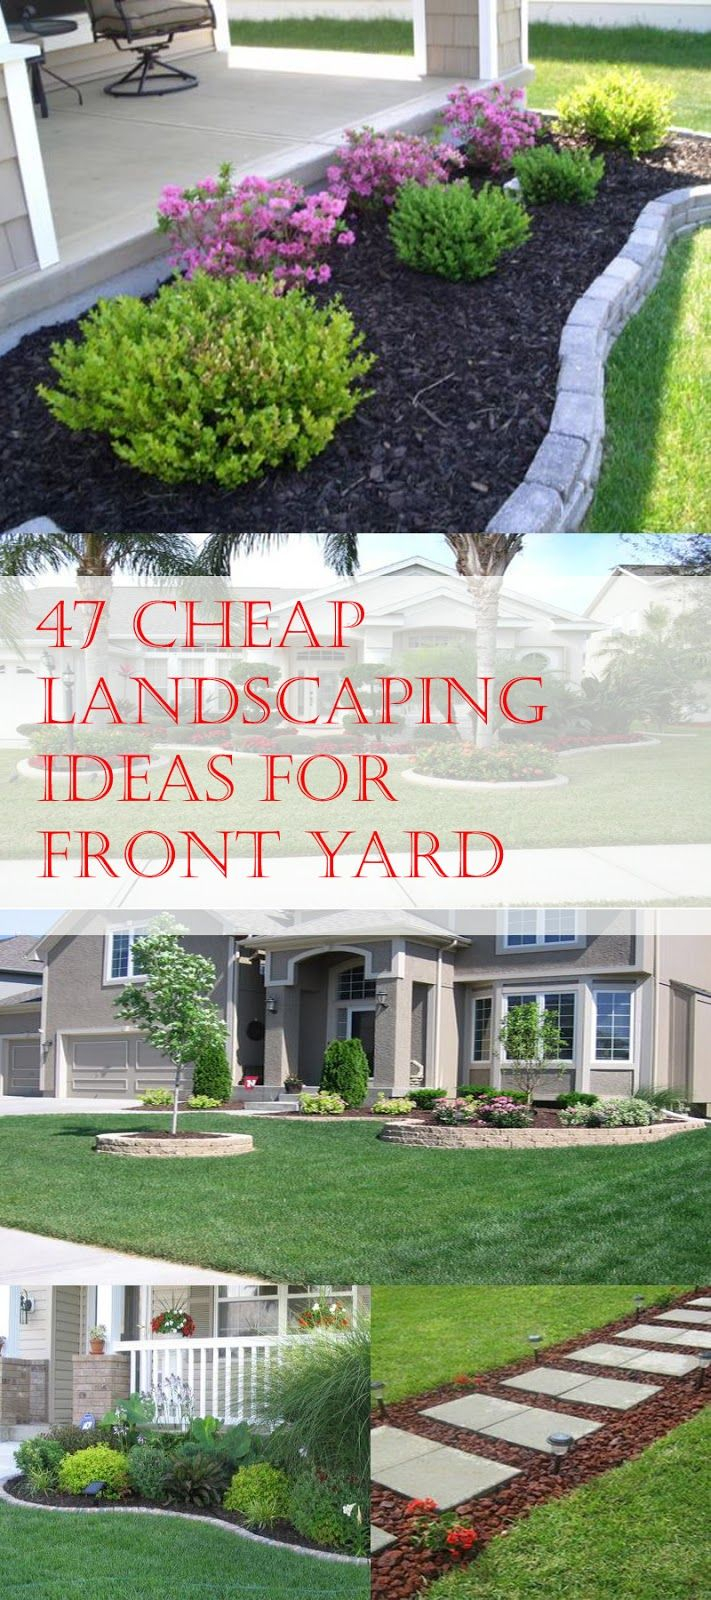 47 Cheap Landscaping Ideas For Front Yard Landscaping Ideas within Backyard Cheap Landscaping Ideas